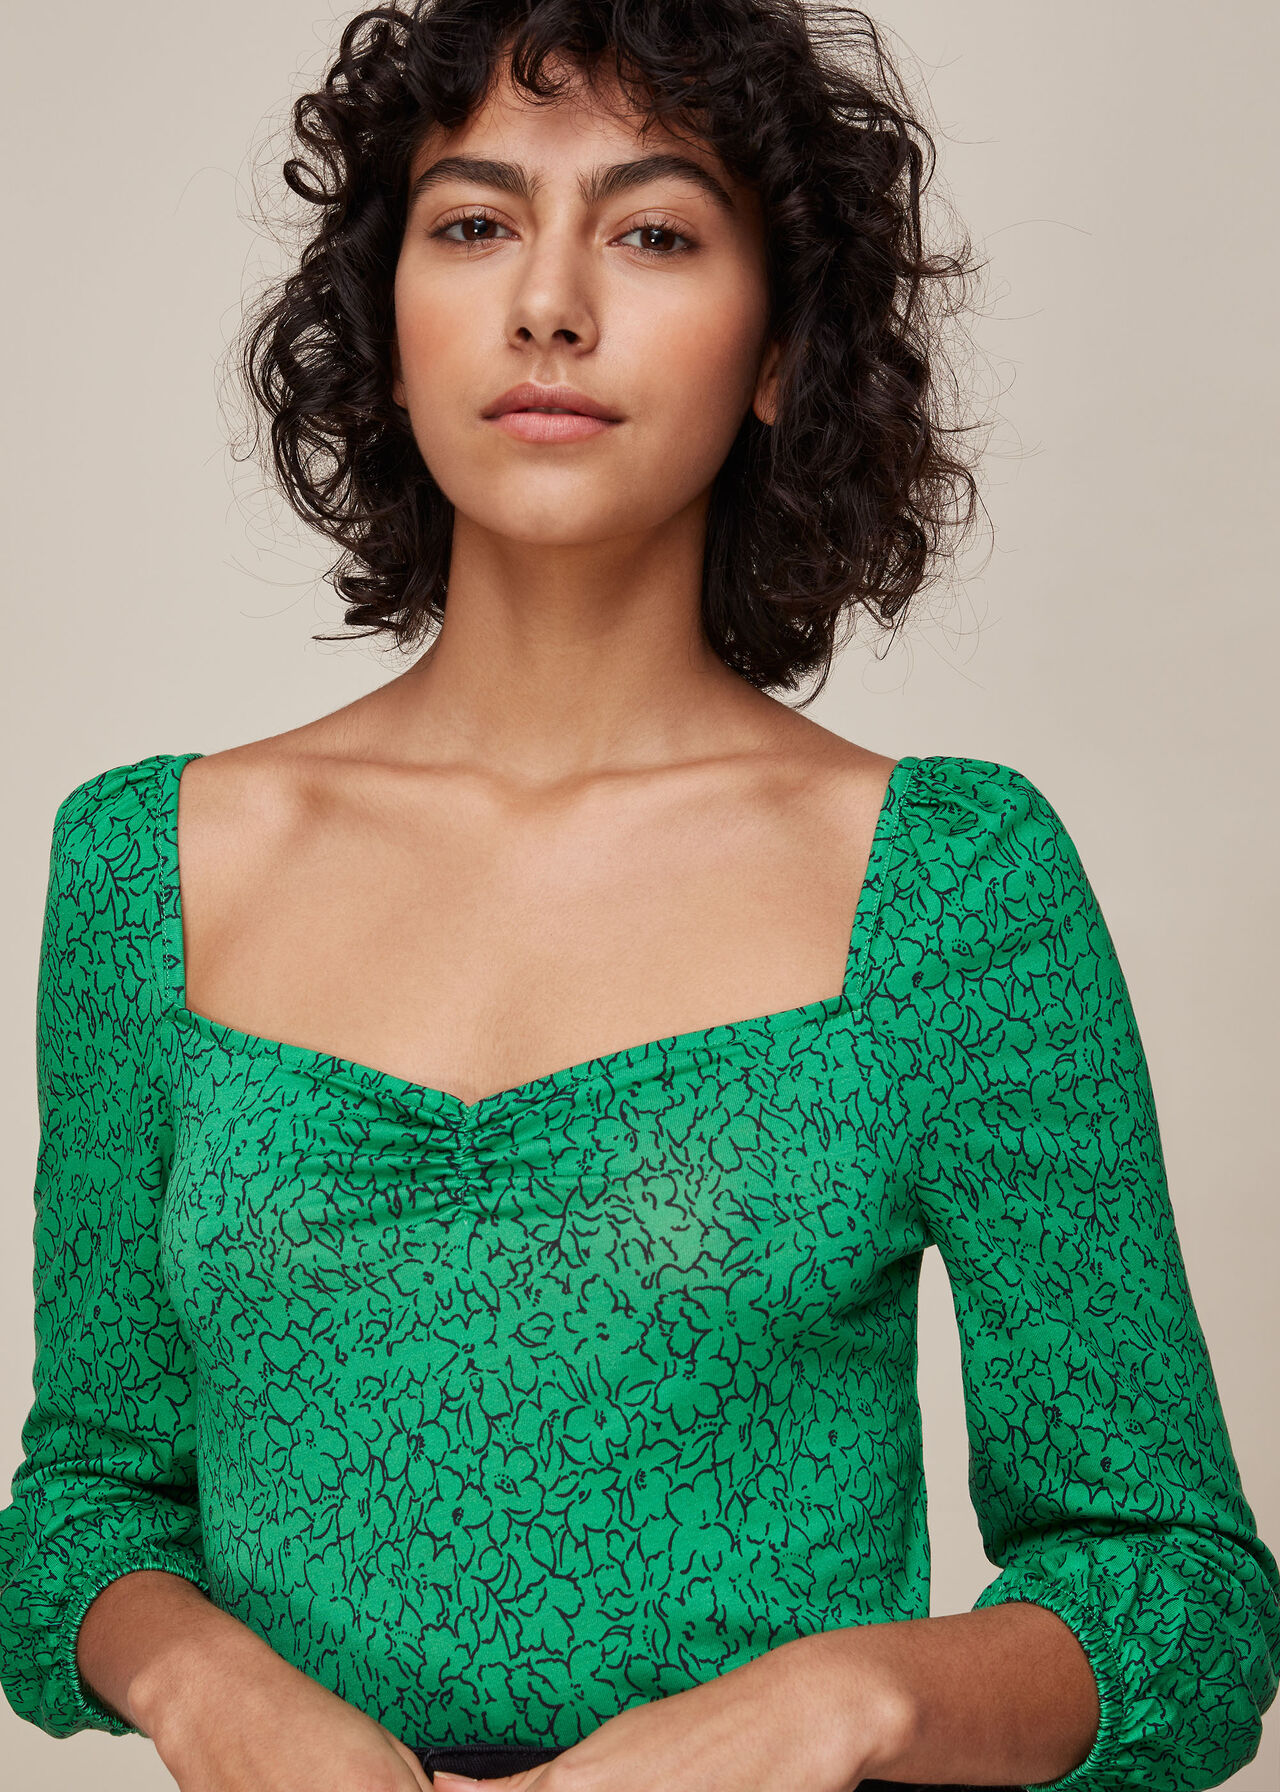 Sketched Floral Sweetheart Top Green/Multi